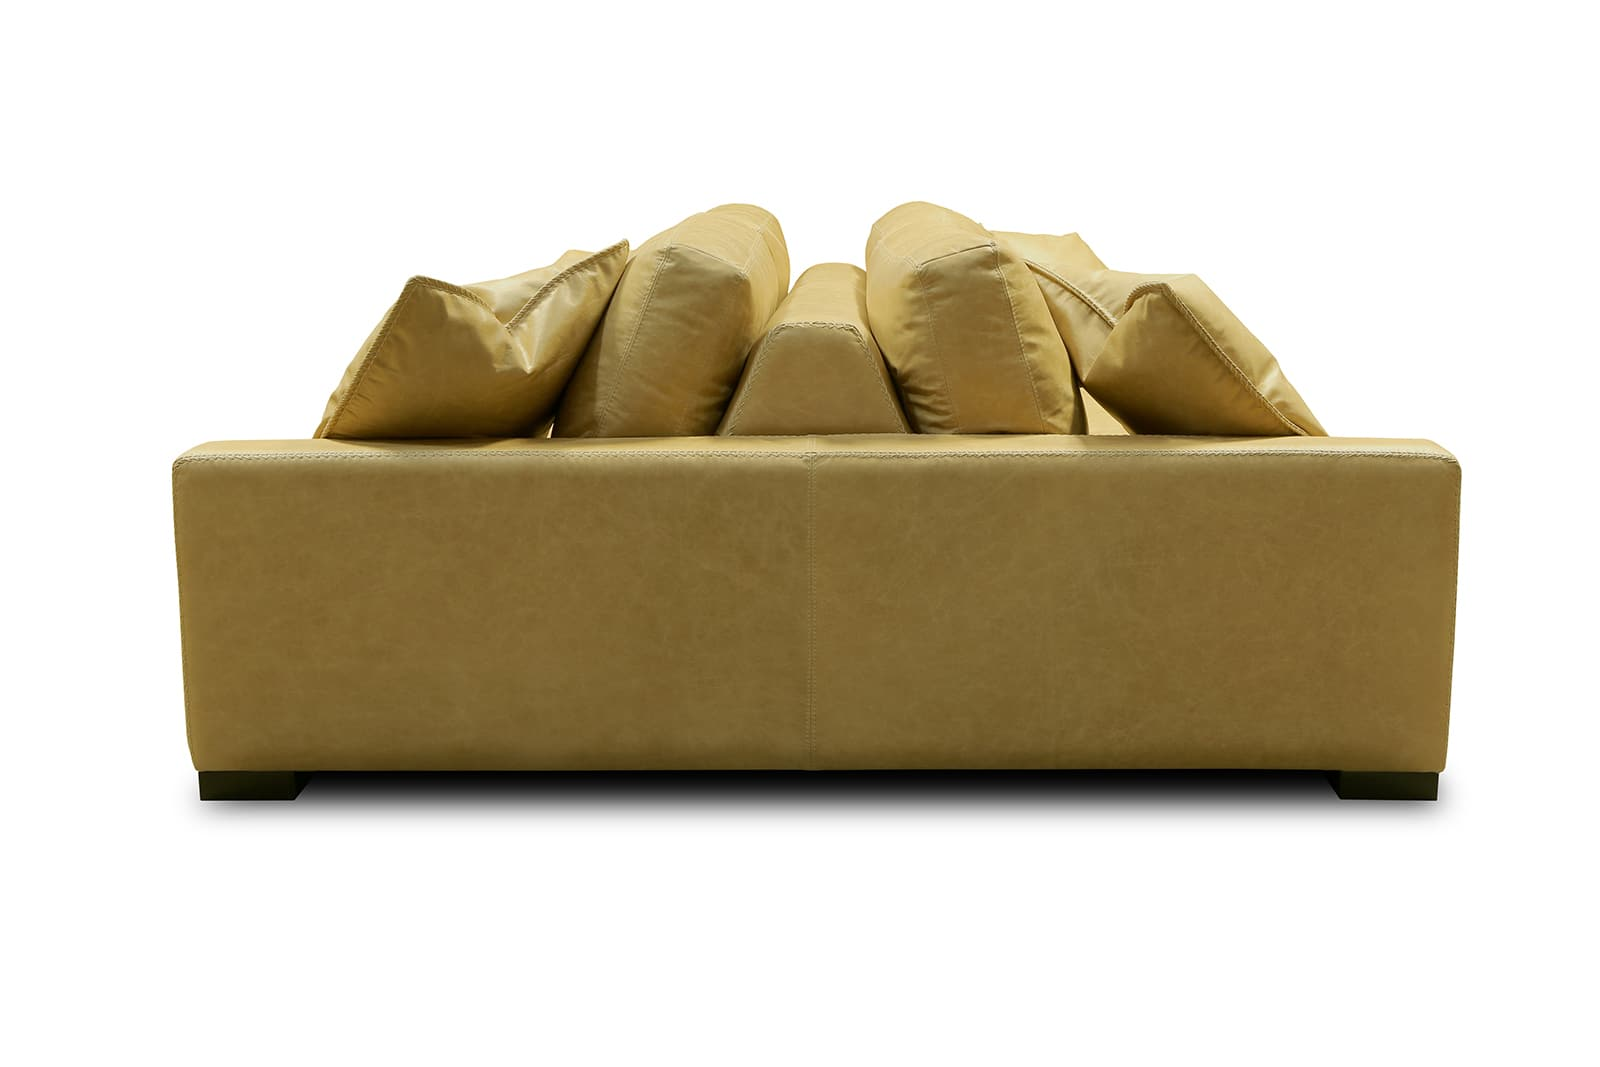 Downtown Cowboy 2 sided sofa 2